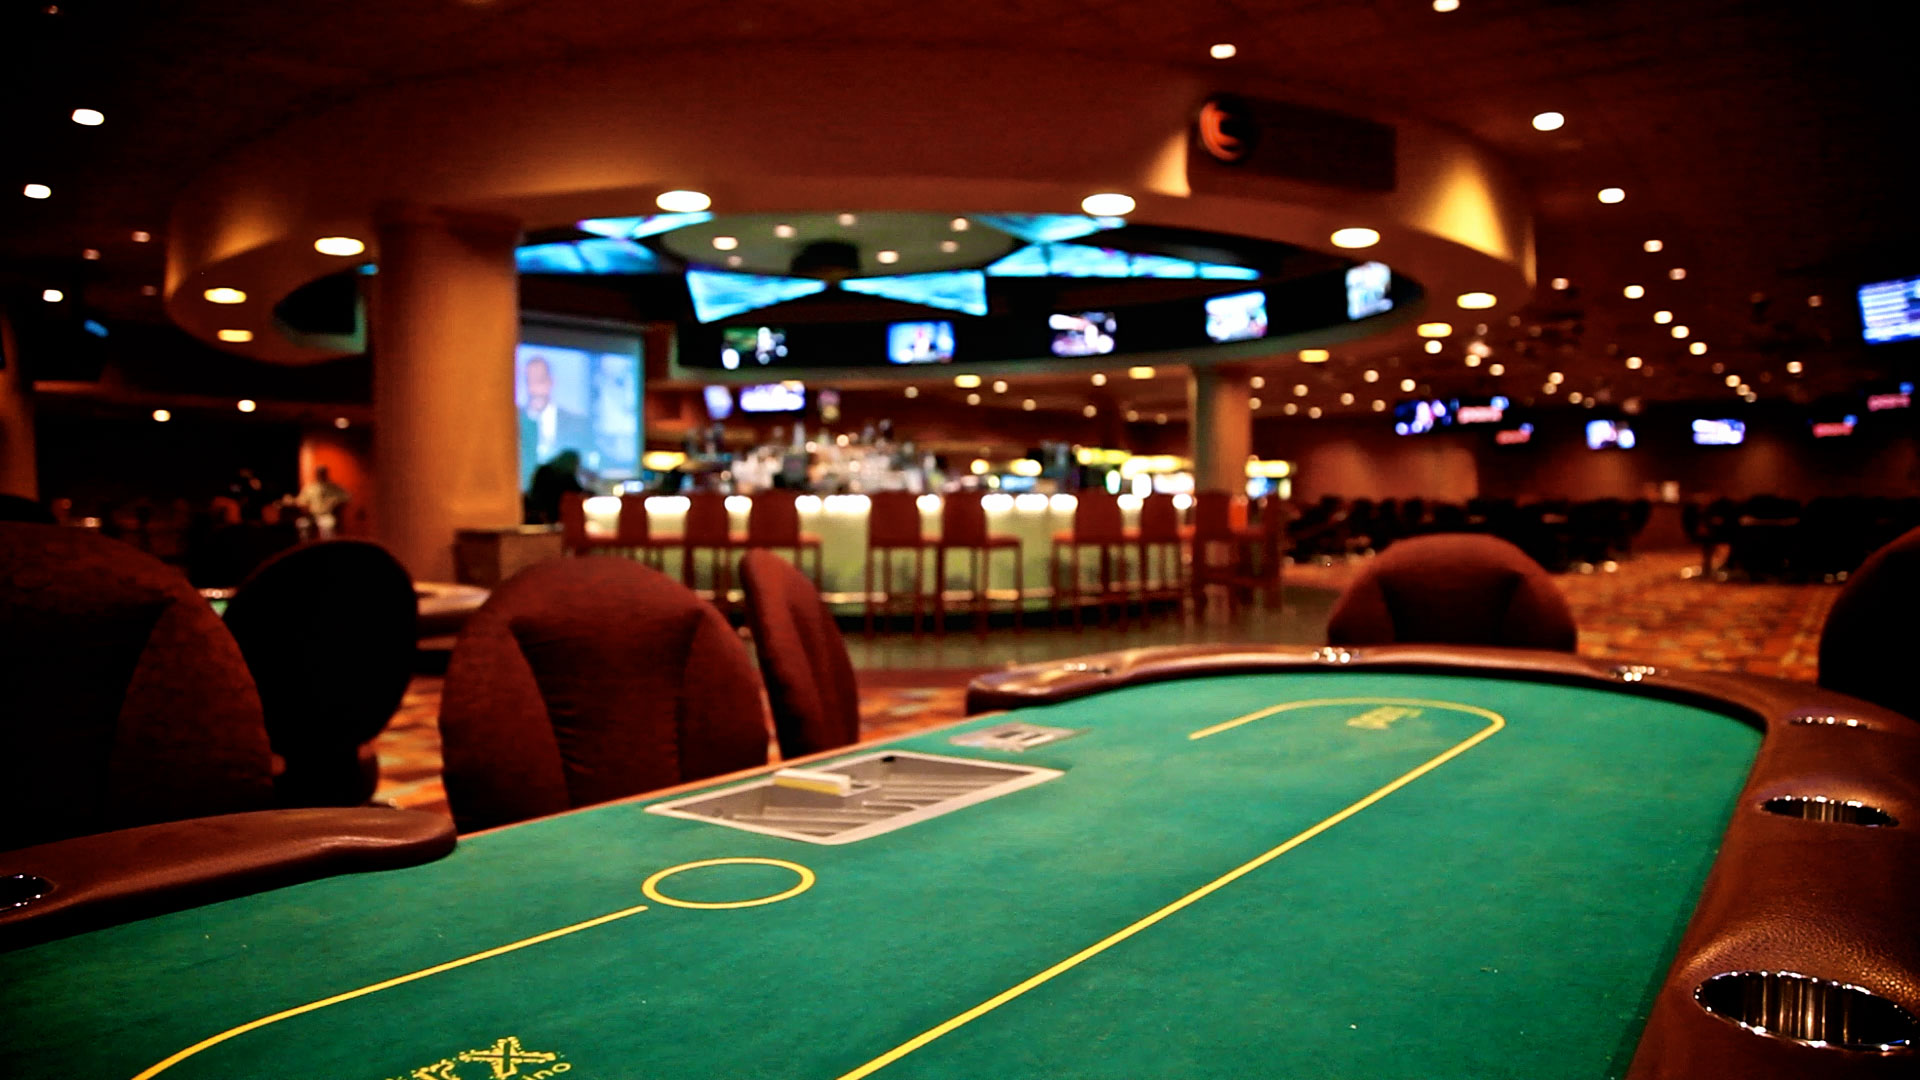 The Punniest Casino Puns You can find